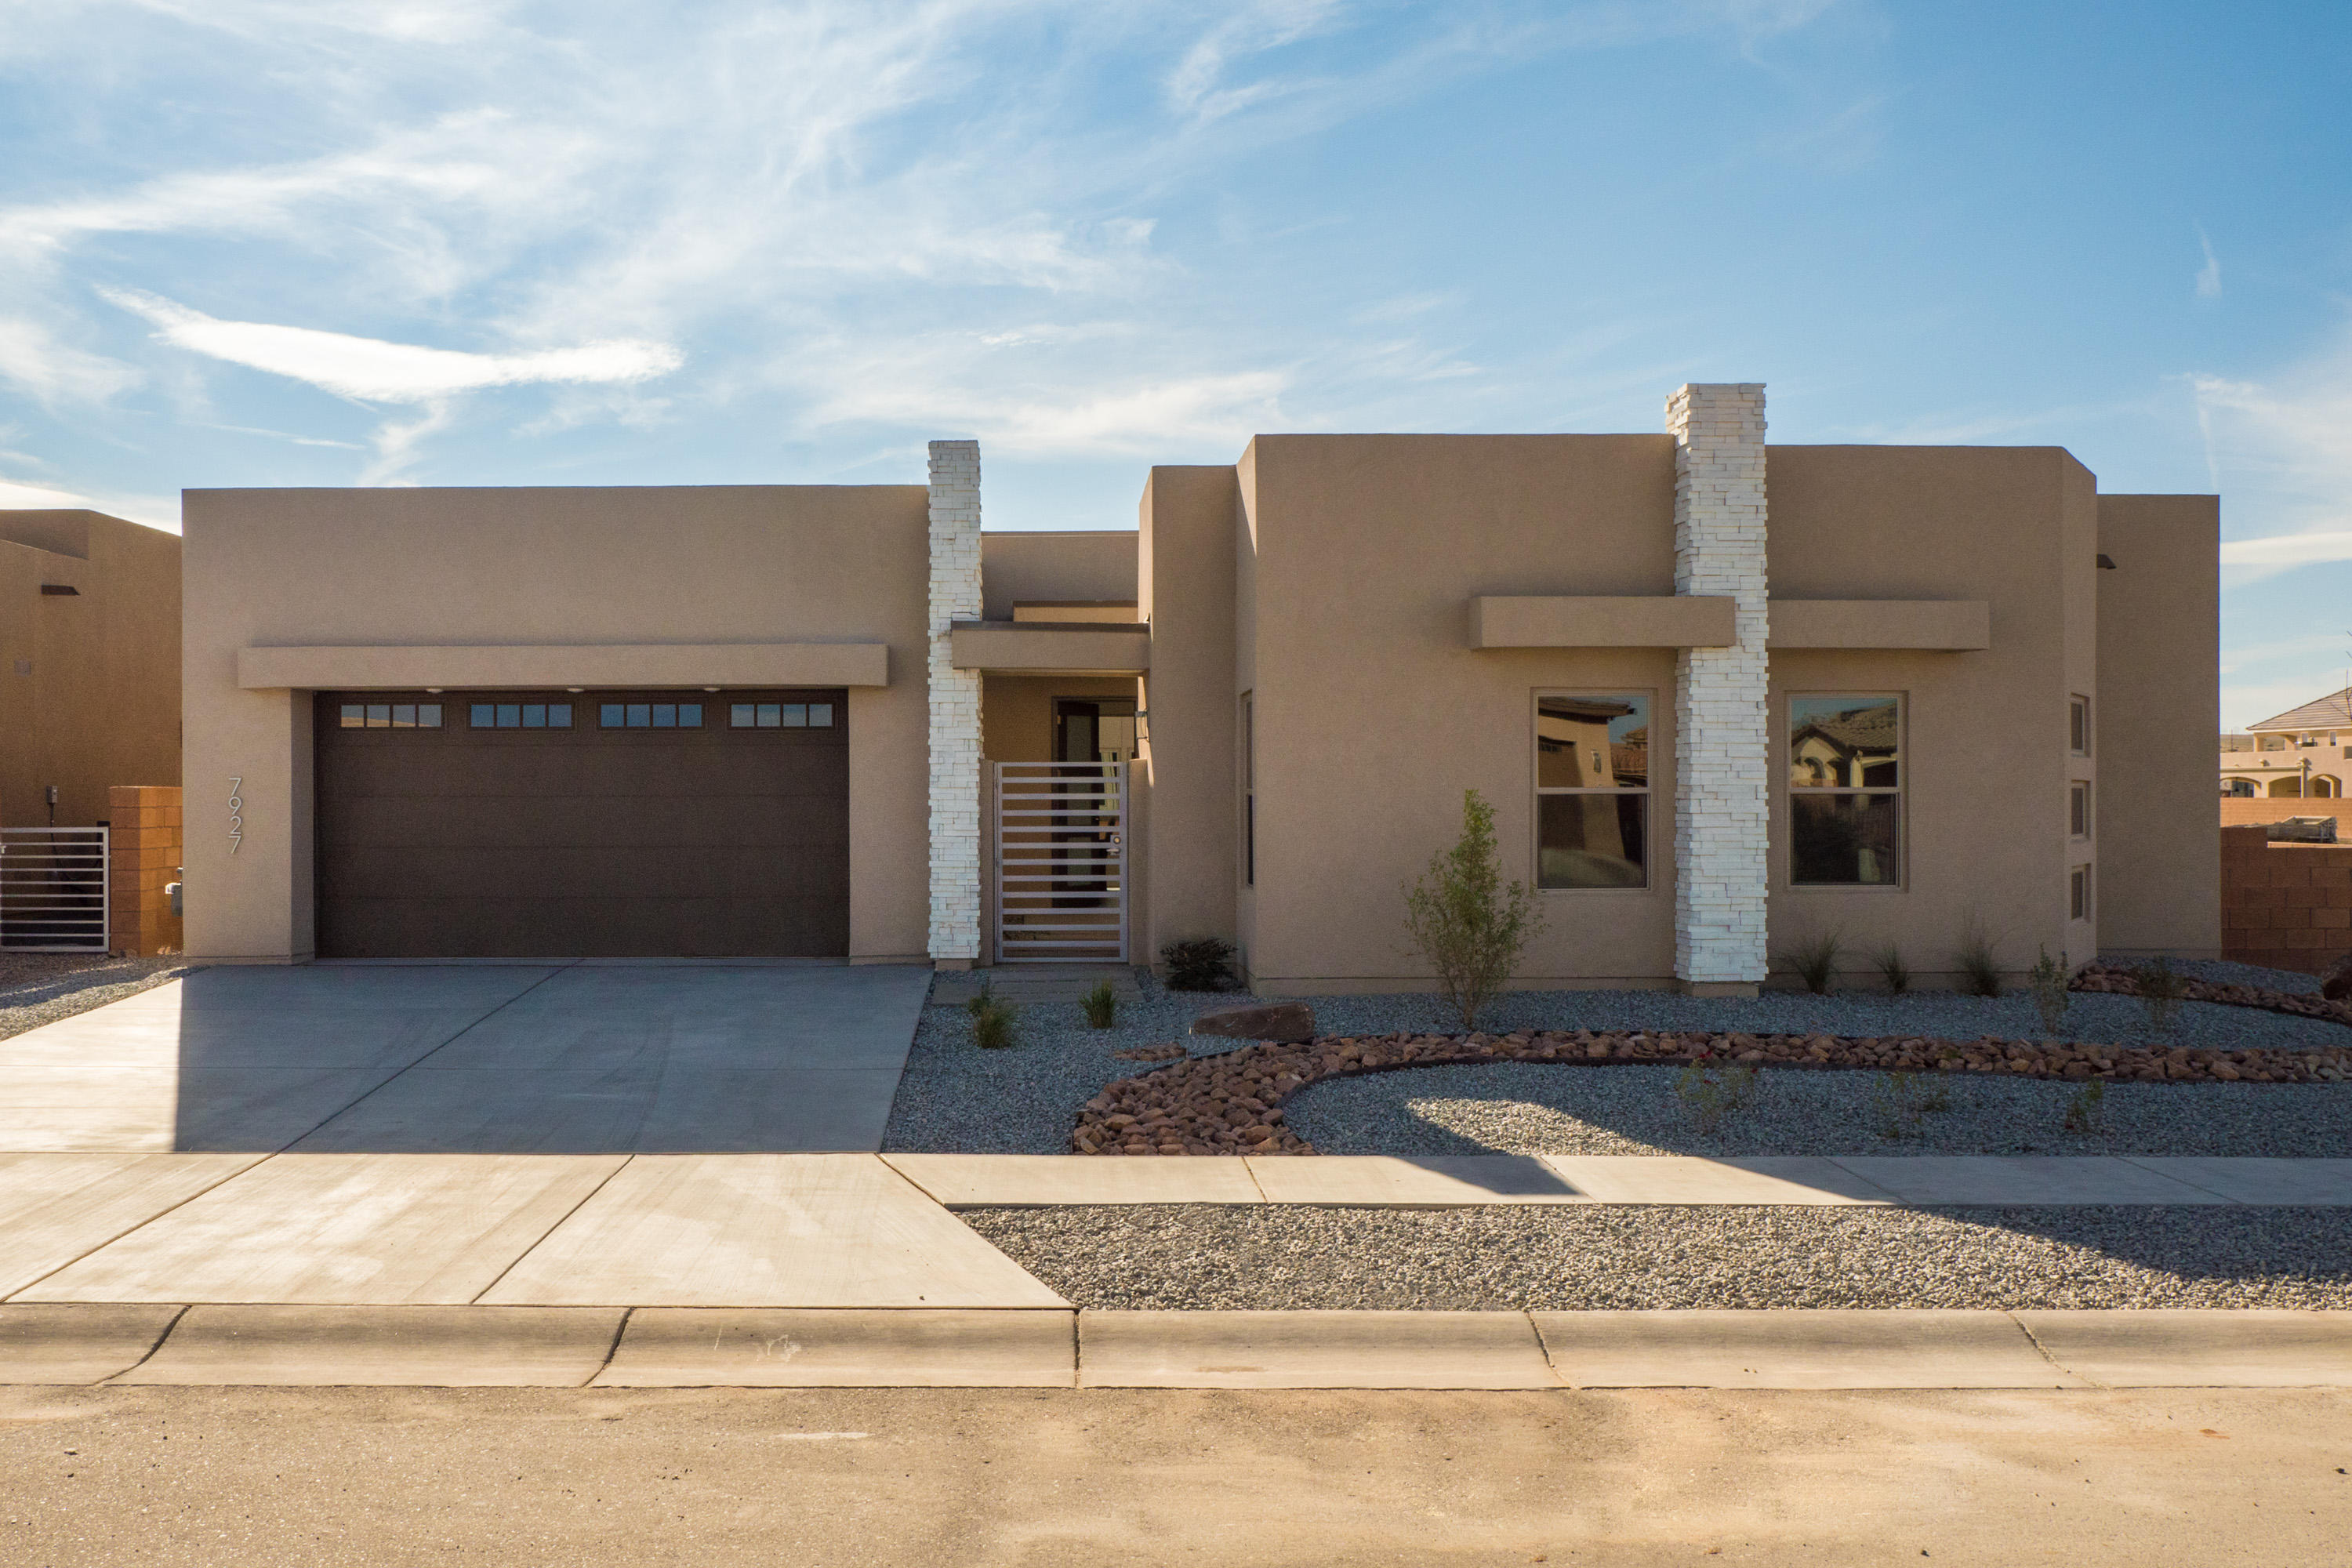 Brand new one-of-a-kind  Rhett Ashley beauty with a new floor plan in the Petroglyphs community! Home features 1,821sf with 3 bedrooms and 3 bathrooms. Gated courtyard entrance! Gorgeous kitchen with upgraded cabinetry, quartz countertops, custom backsplash, gas range, range hood, built-in microwave, dishwasher and refrigerator, large island with seating area and a pantry. Beautiful open living area with large picture windows and outdoor access. Elegant owners suite with outdoor access and a barn door that leads to the spa like bath. Bath hosts dual sinks with granite countertops, a relaxing freestanding tubs, walk-in shower with tile surround and a walk-in closet! Great backyard fully walled with a large covered patio.